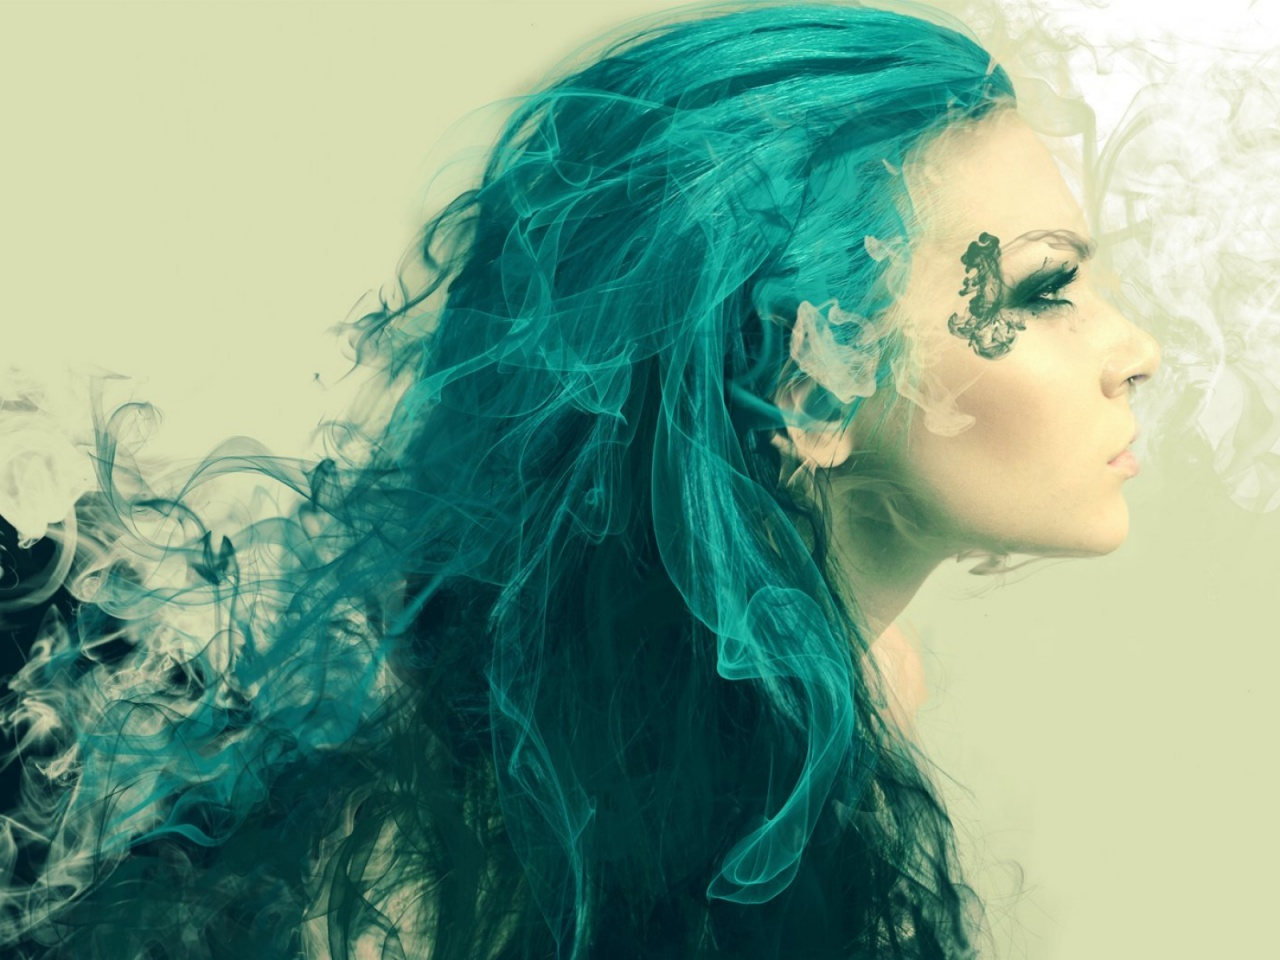 1280x720 Woman Turquoise Hair Looking